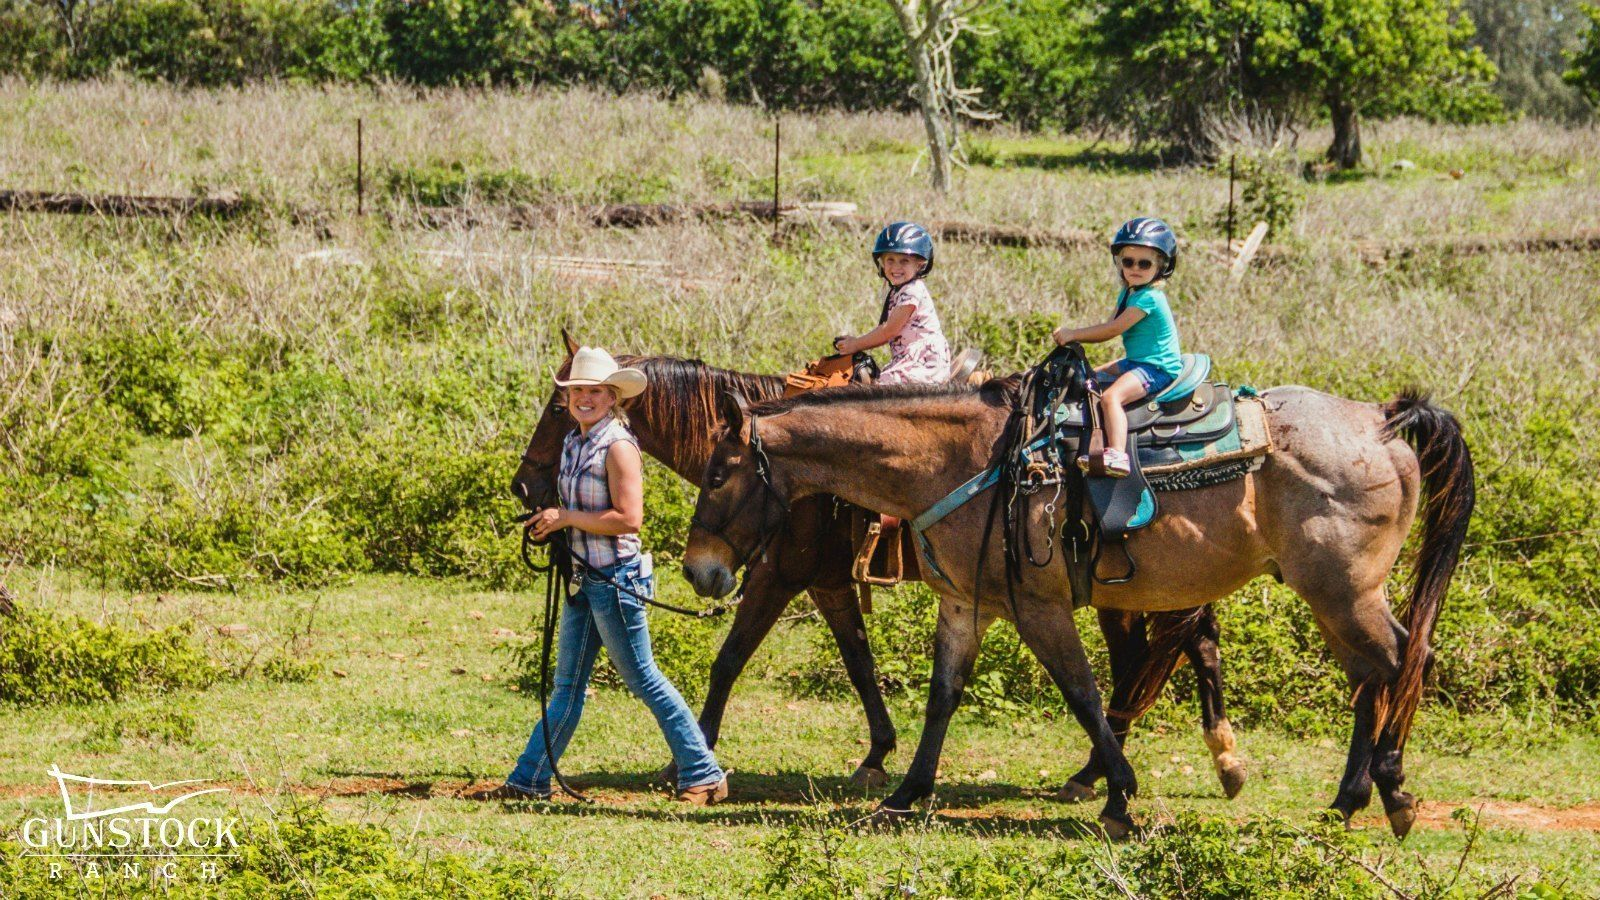 Group on the Pony Ride for Kids activity in Kahuku